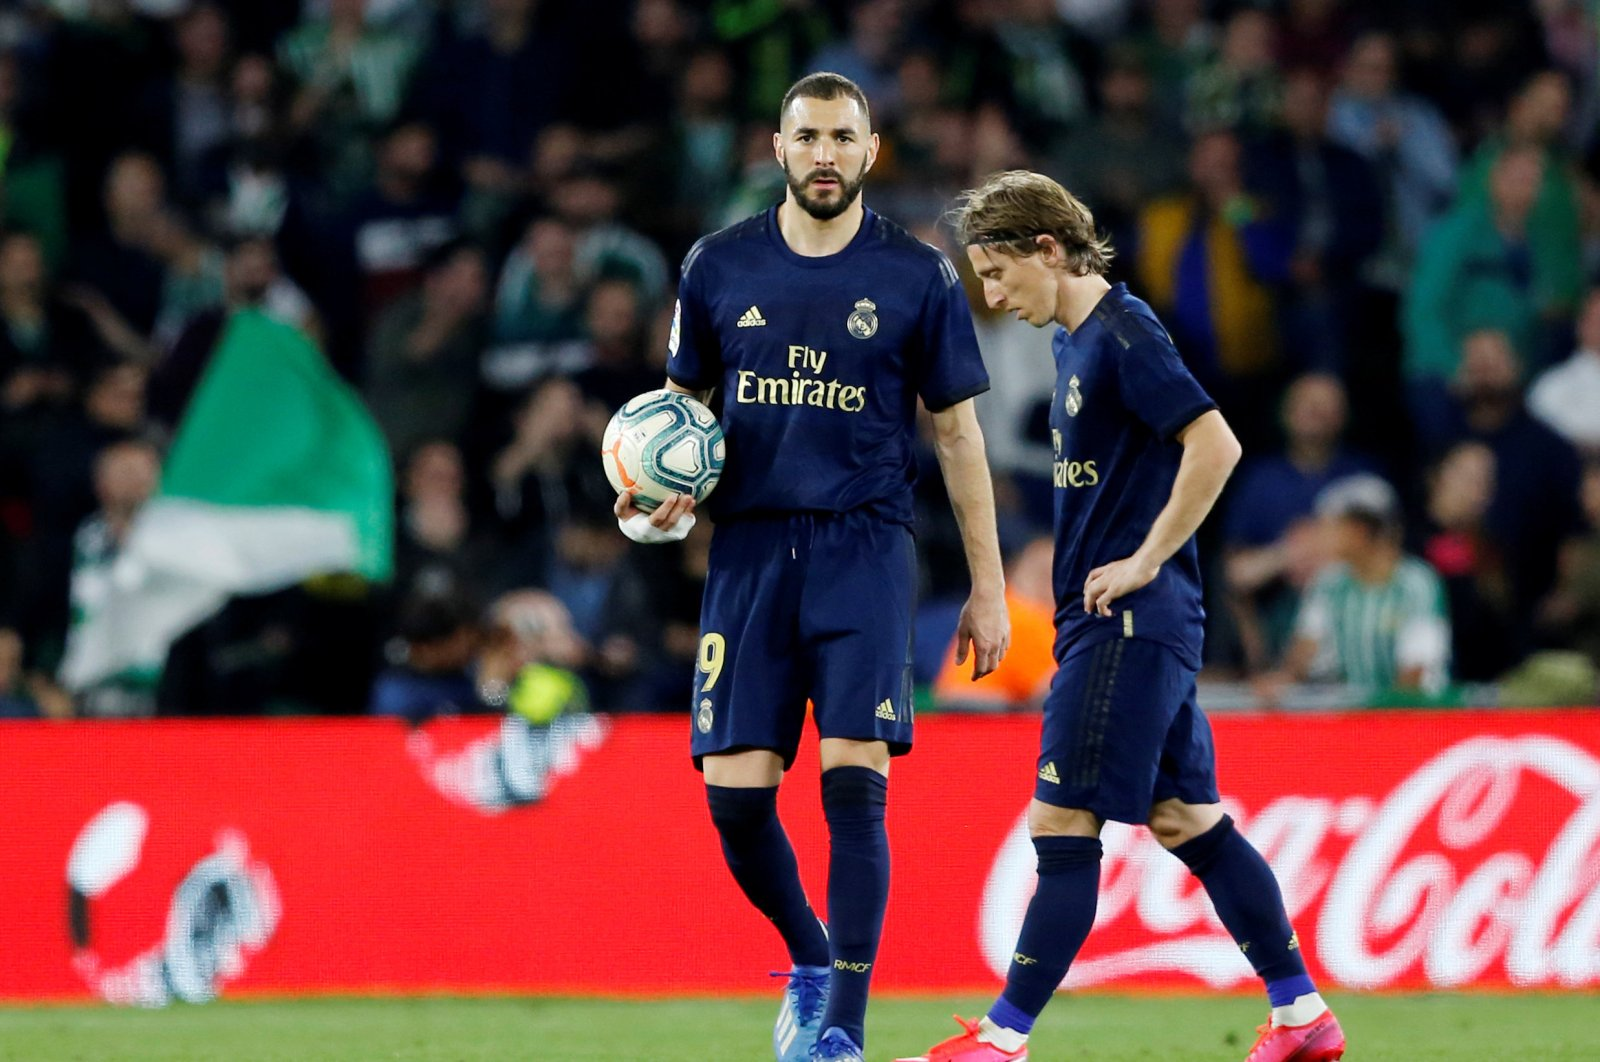 Real Madrid's Karim Benzema and Luka Modric react after Real Betis' first goal during a La Liga match, March 8, 2020. (Reuters Photo)